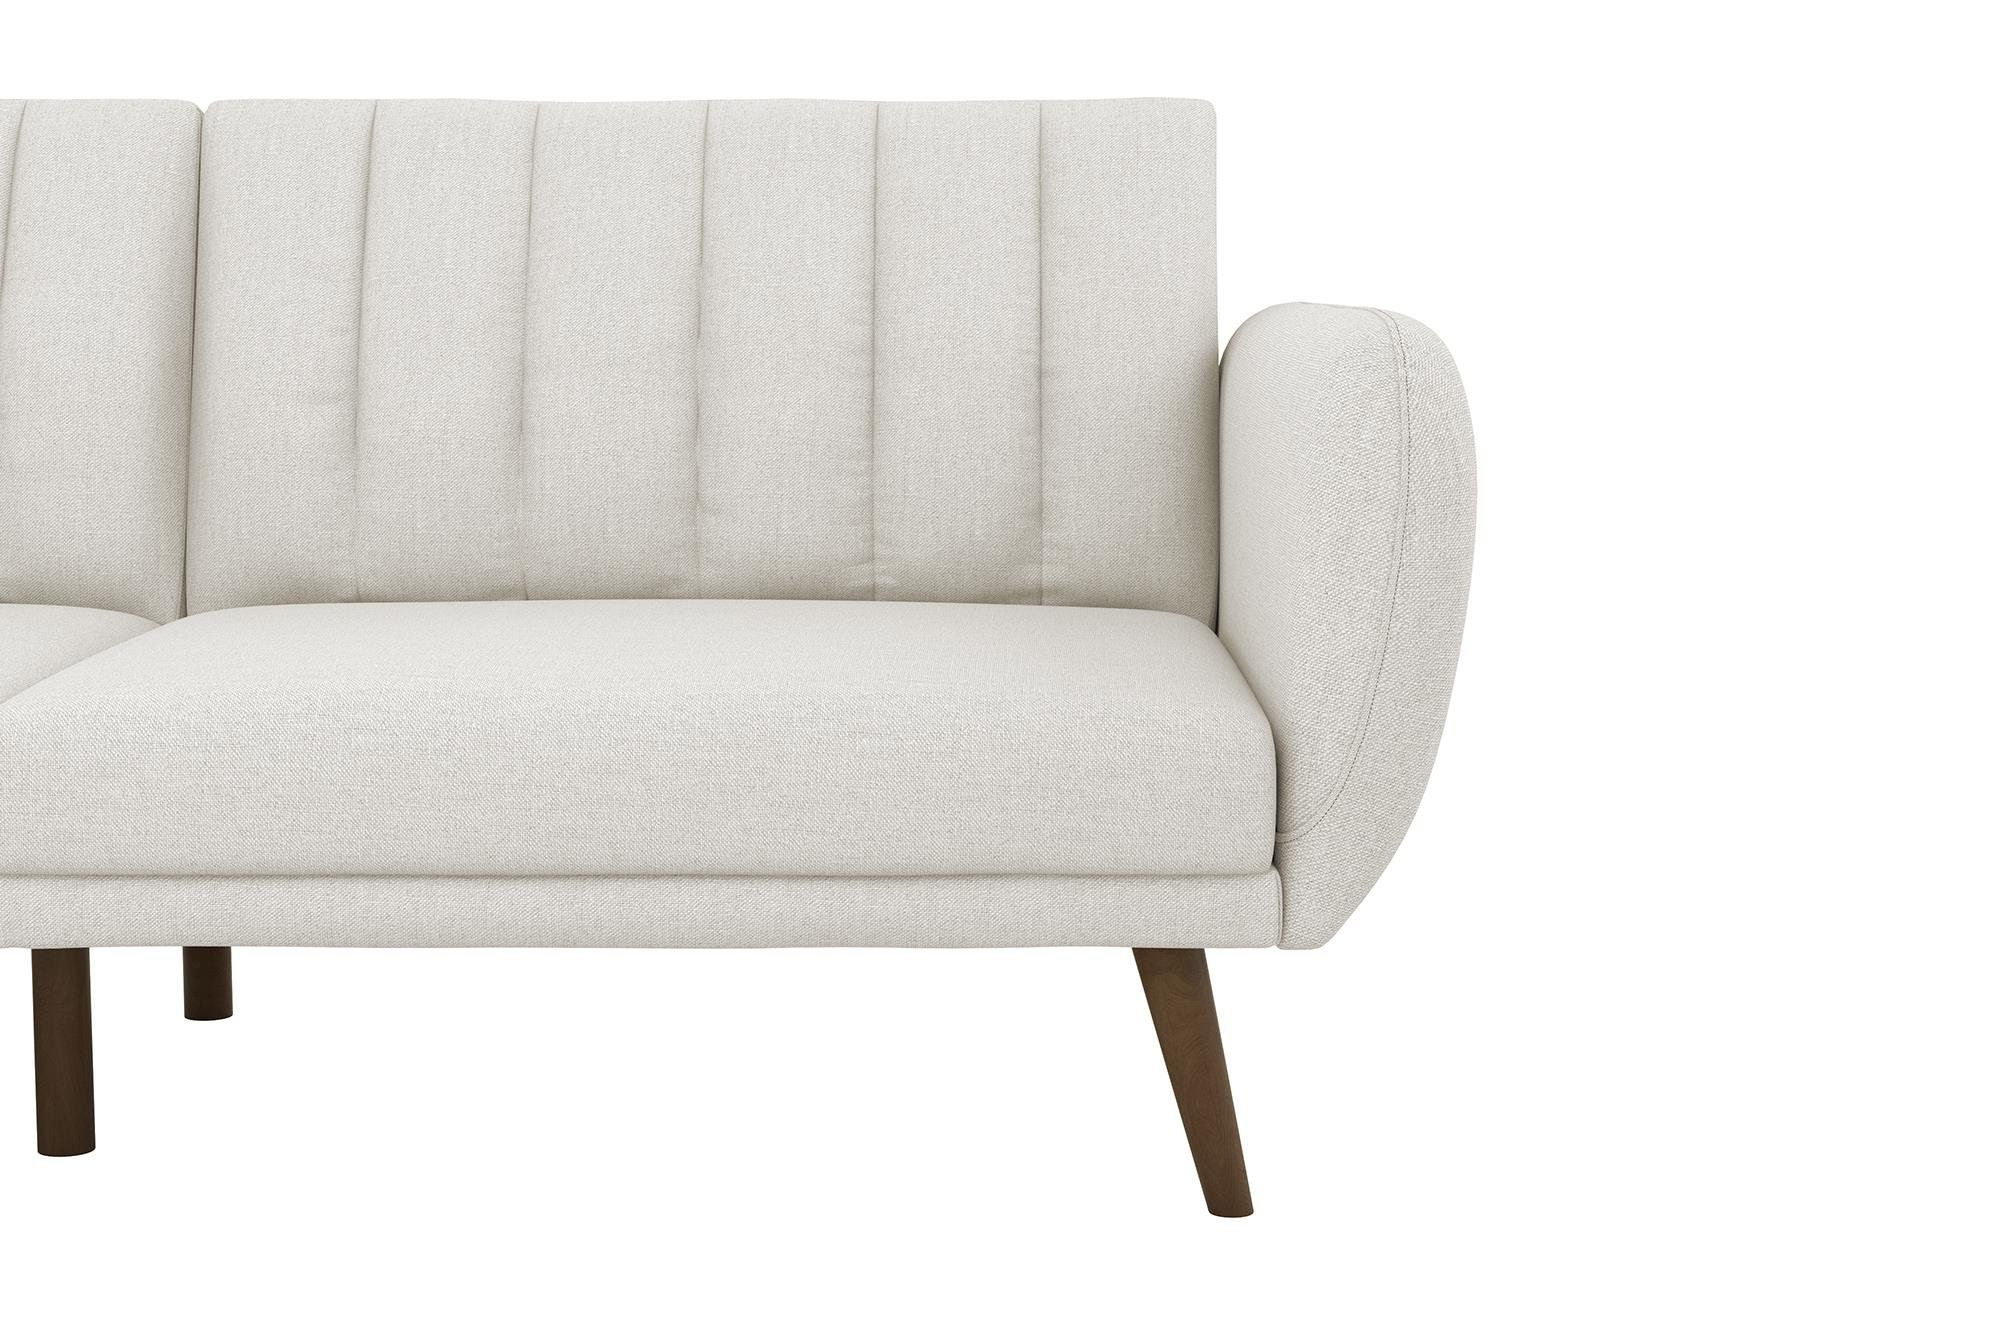 Favorite Novogratz Brittany Sofa Futon Premium Linen Upholstery And For Brittany Sectional Futon Sofas (View 18 of 20)